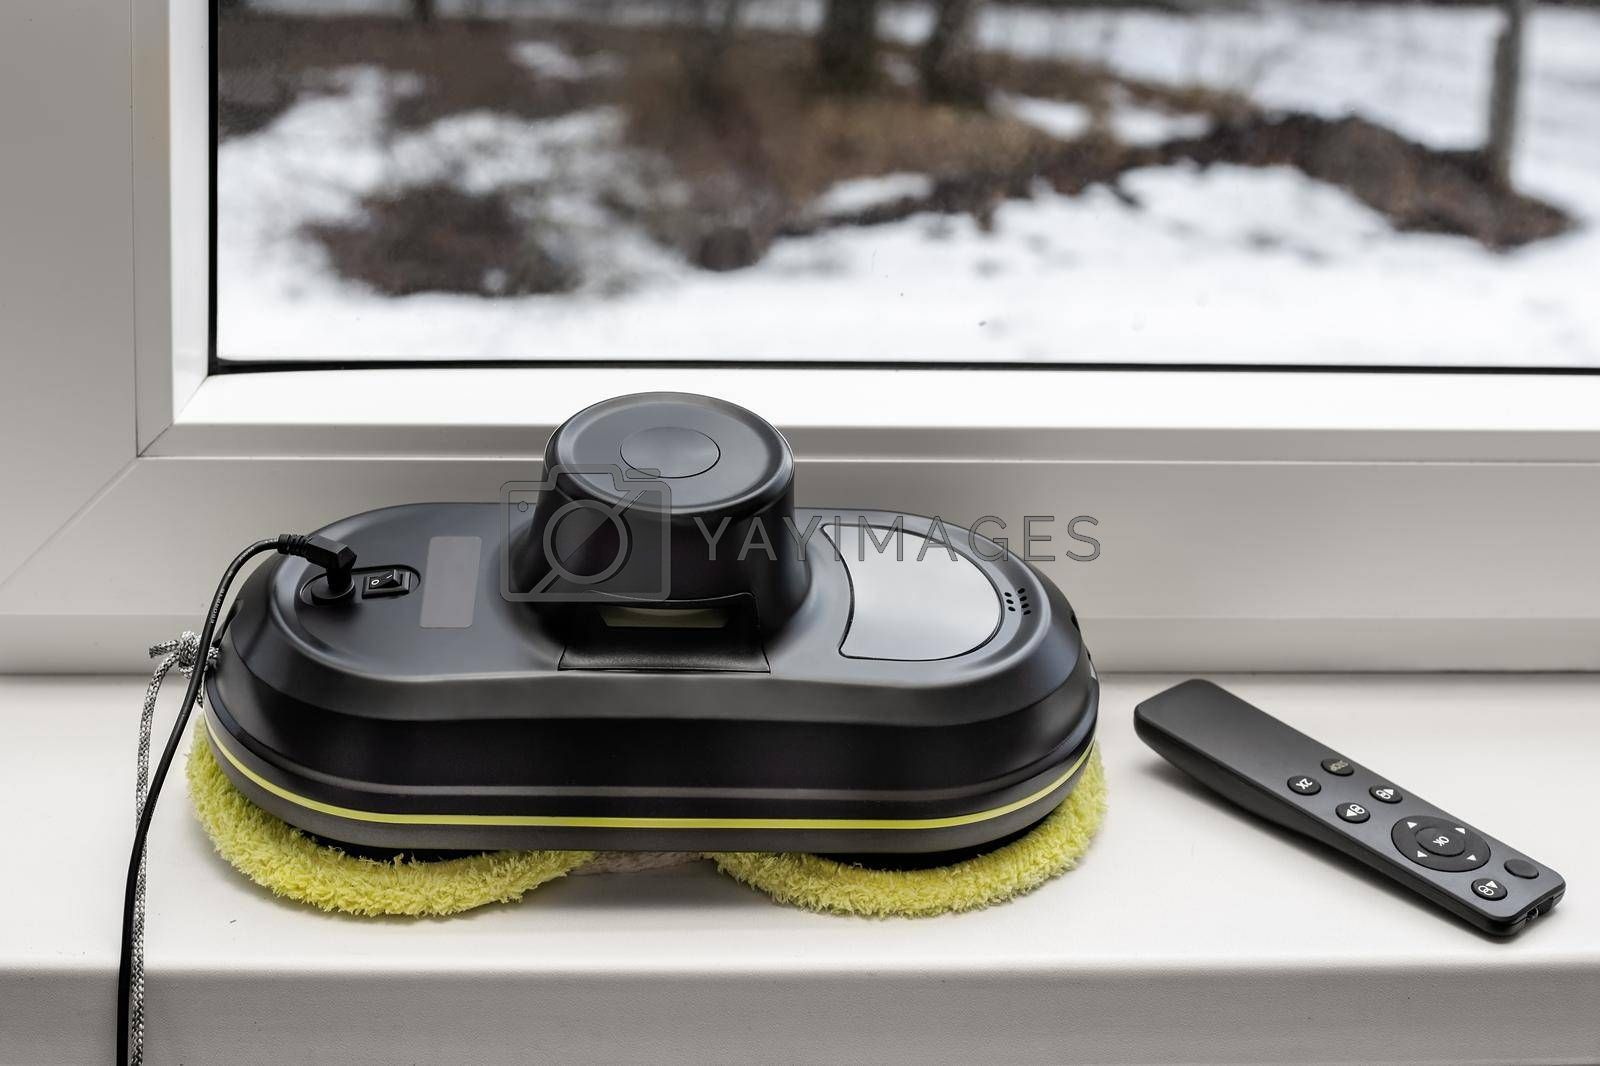 Robotics, a window cleaner robot and a remote control for cleaning window panes. Lying on the windowsill. Front view . Copy space